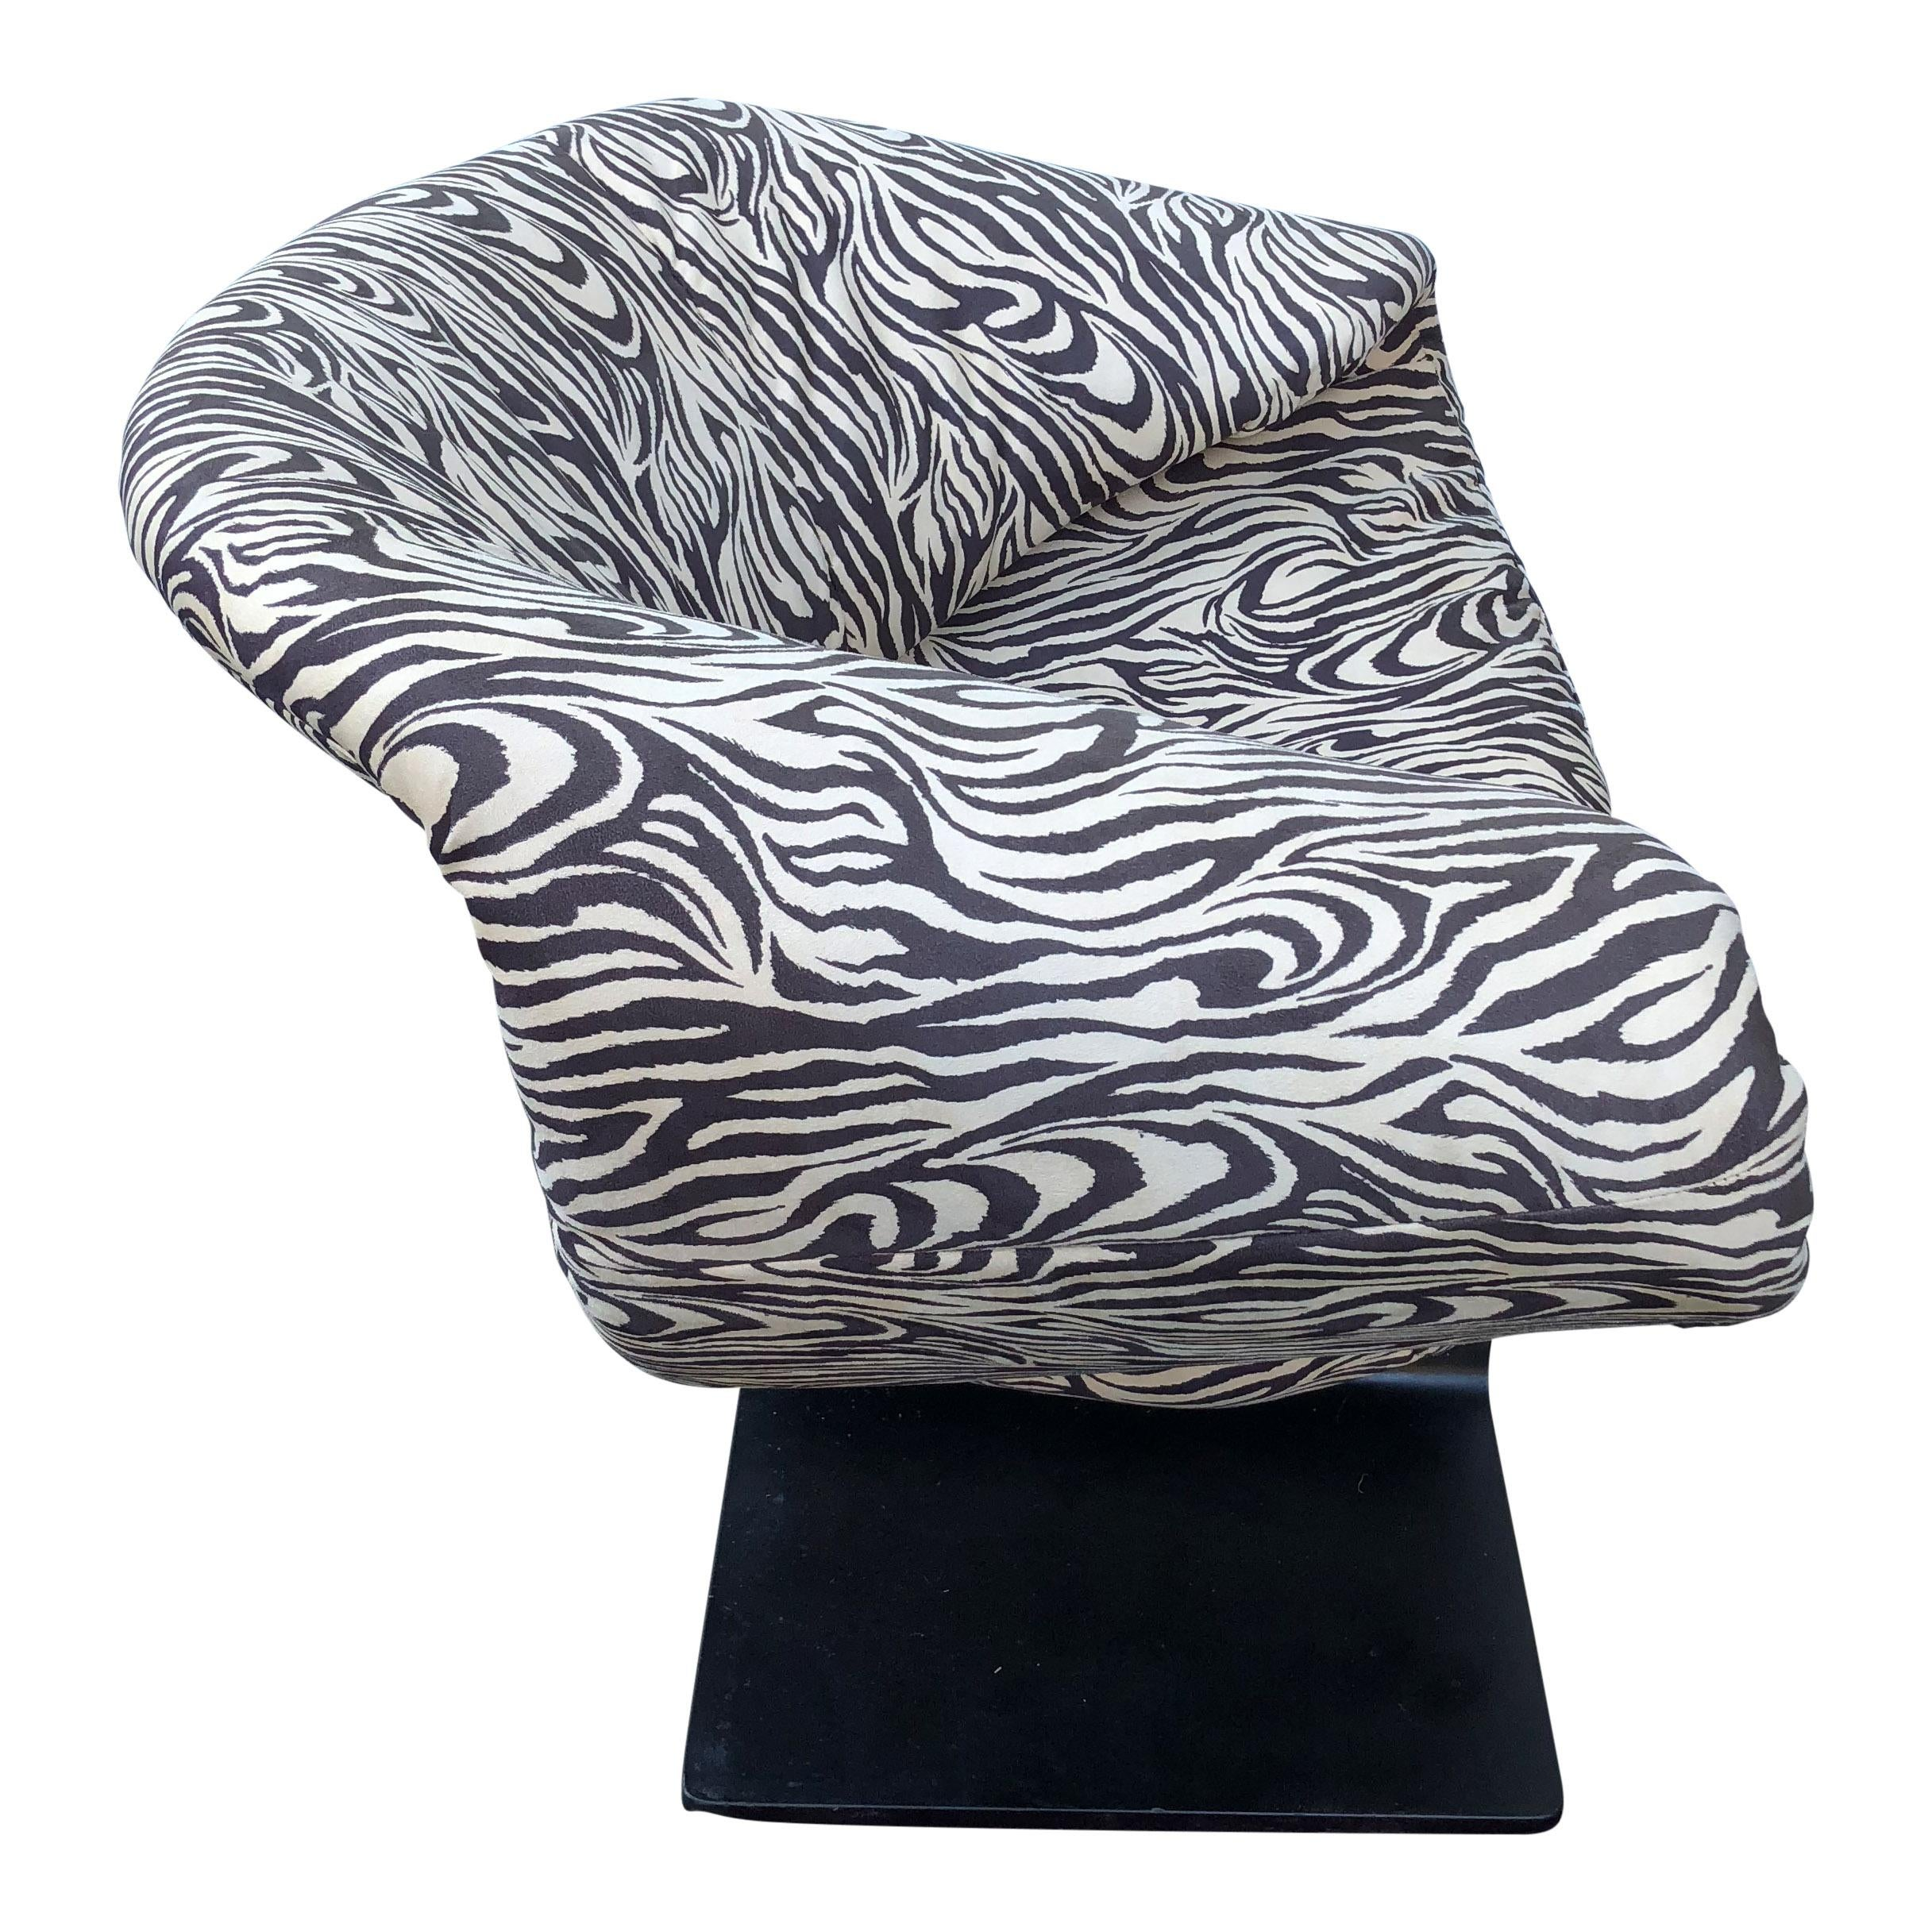 Pierre Paulin For Artifort Ribbon Chair   Image 3 Of 9